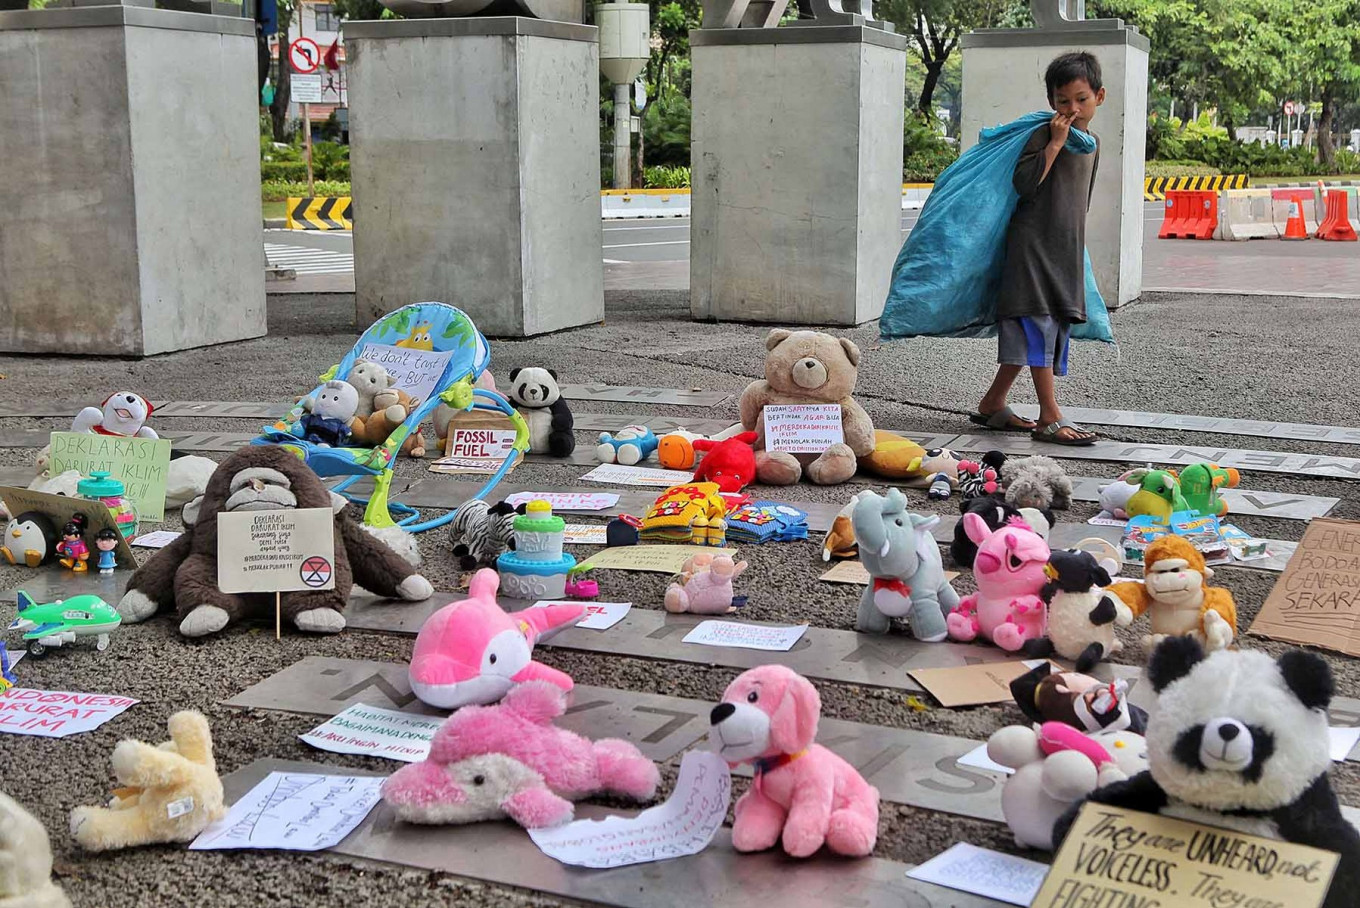 A boy with a bag of scavenged goods looks at toys displayed to commemorate World Children's Day in Jakarta on Nov. 20. The Extinction Rebellion (XR) group displayed hundreds of toys to represent Indonesian children and urged the government to do more to protect them. JP/Seto Wardhana